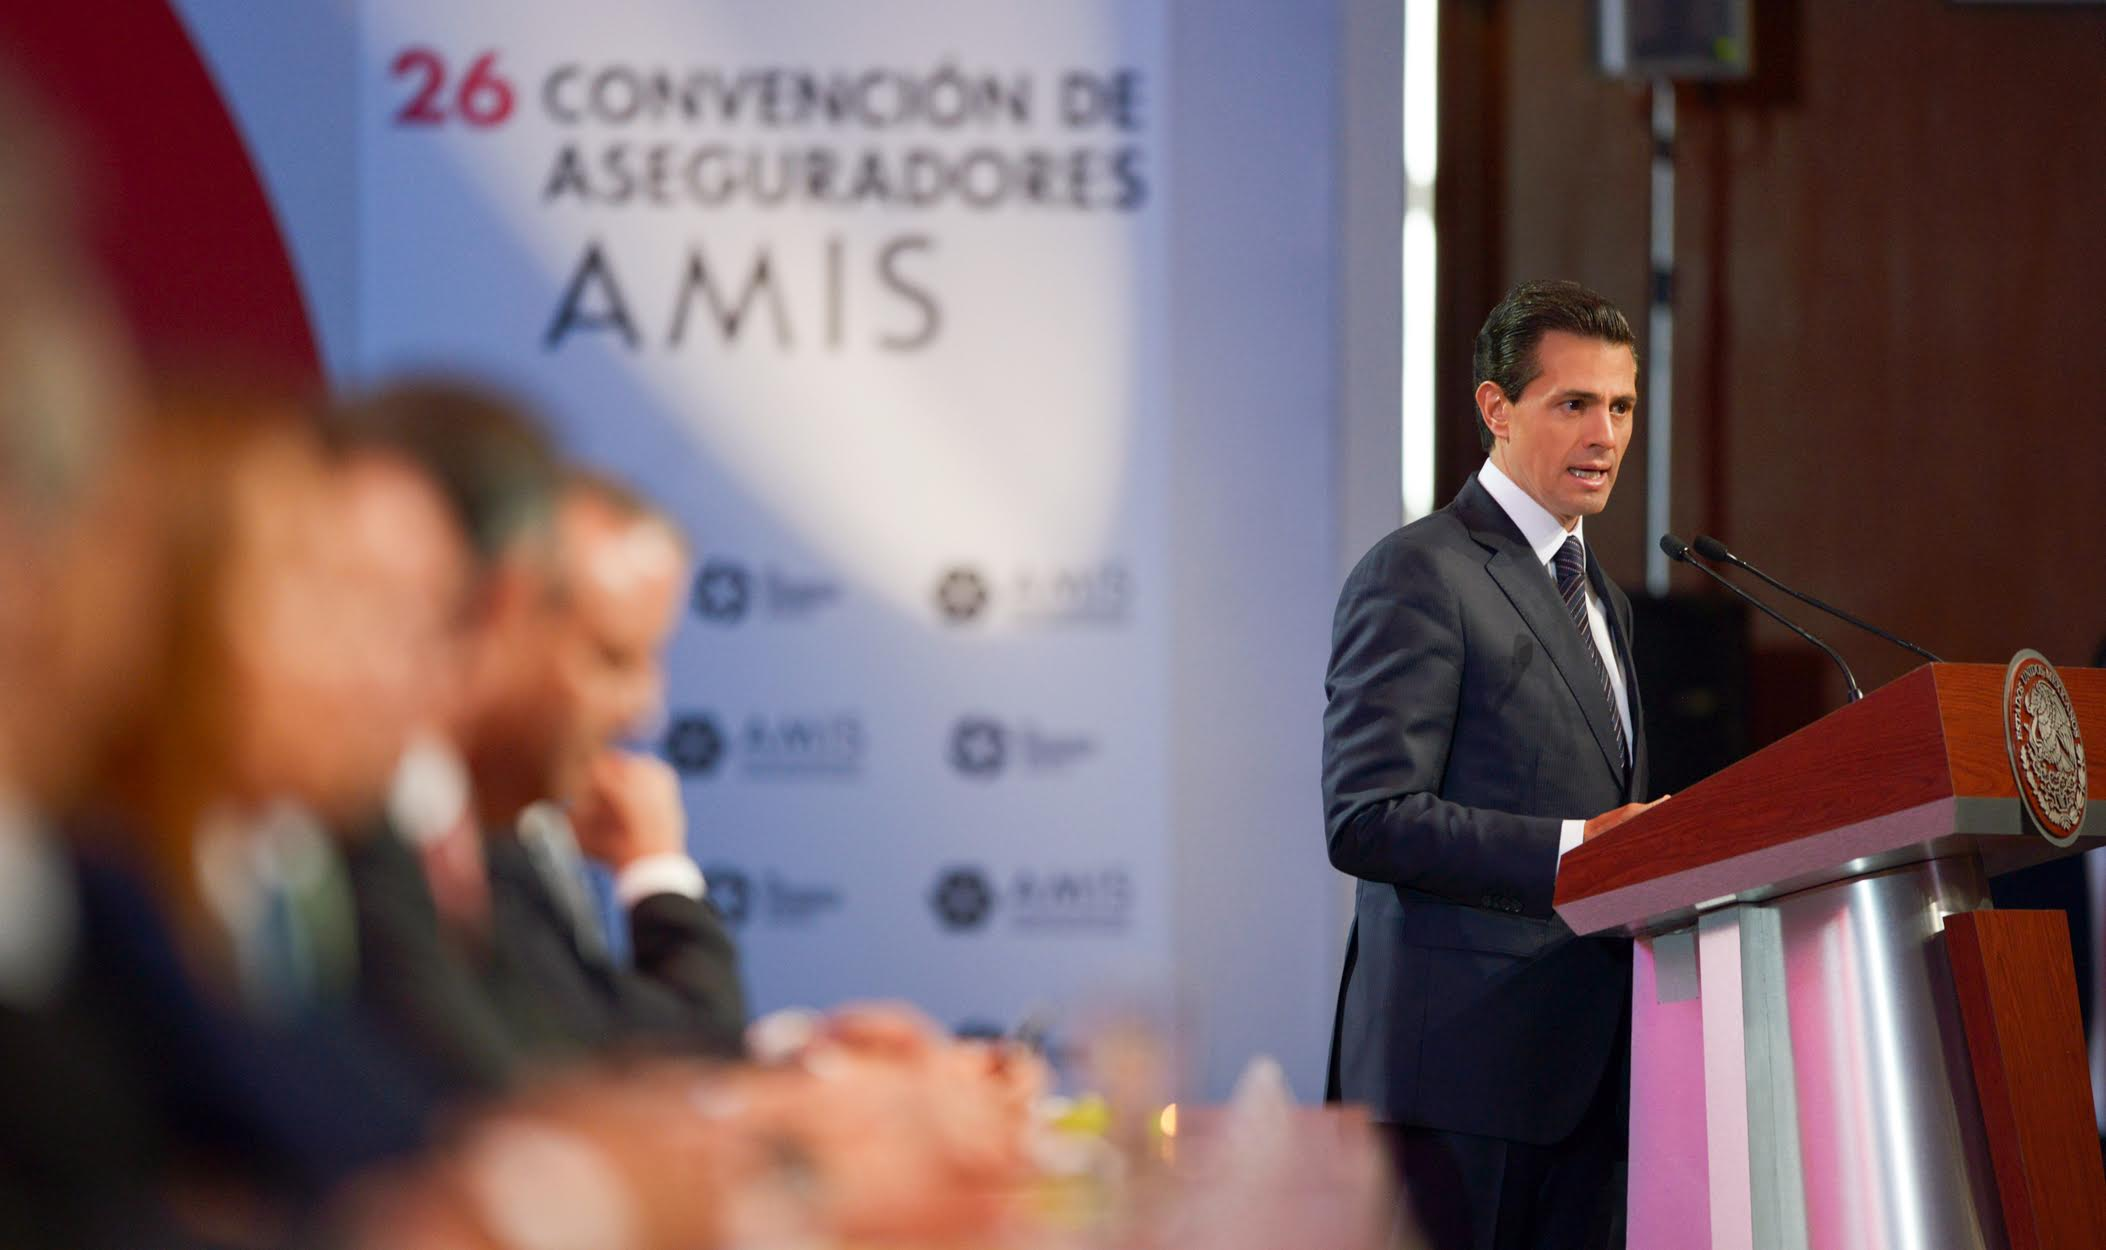 The president led the 26th Convention of Mexican Insurance Companies.